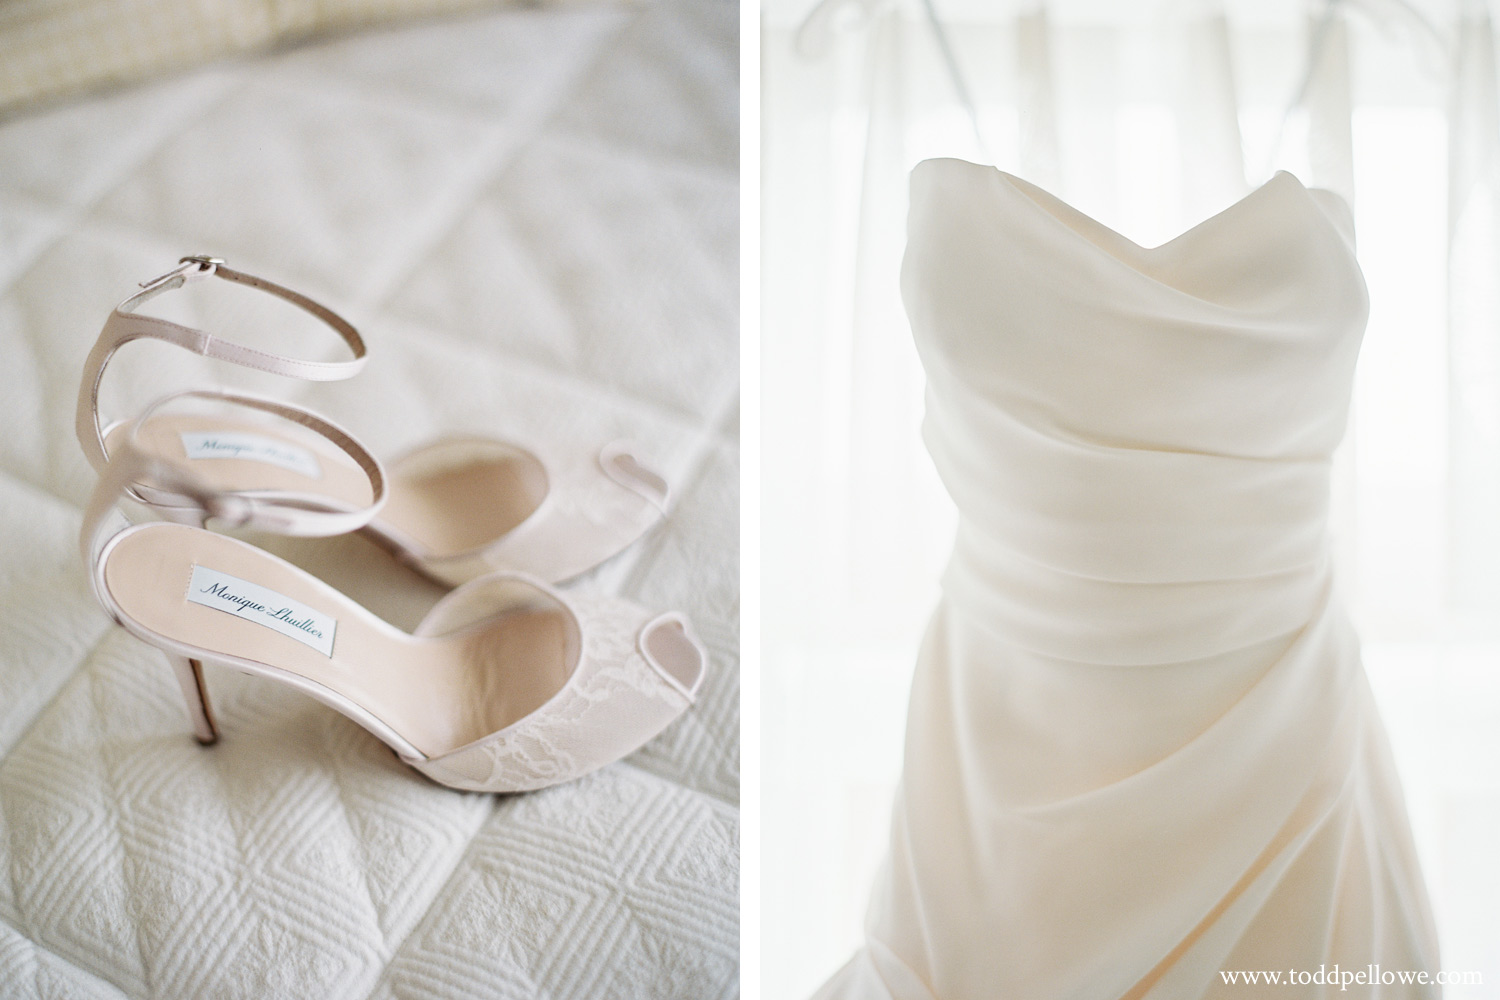 Monique Lhuillier Wedding Shoes and dress